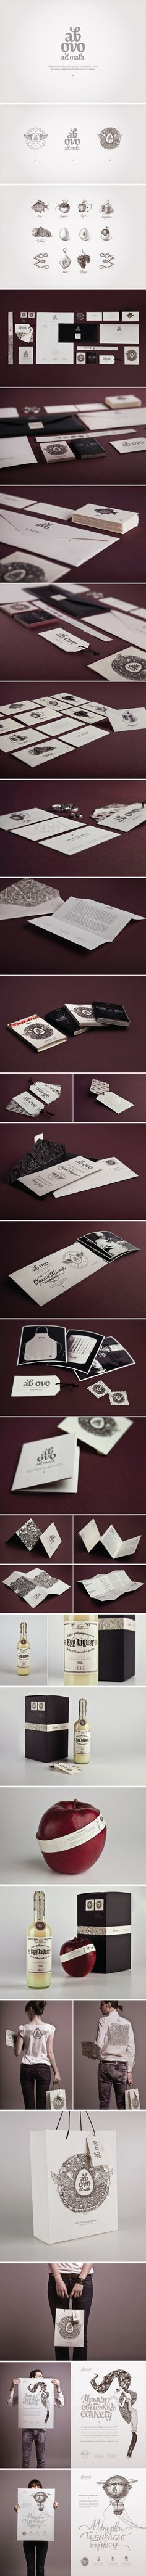 Ab ovo identity, Identity © Шкаровская Ирина #packaging #branding #marketing